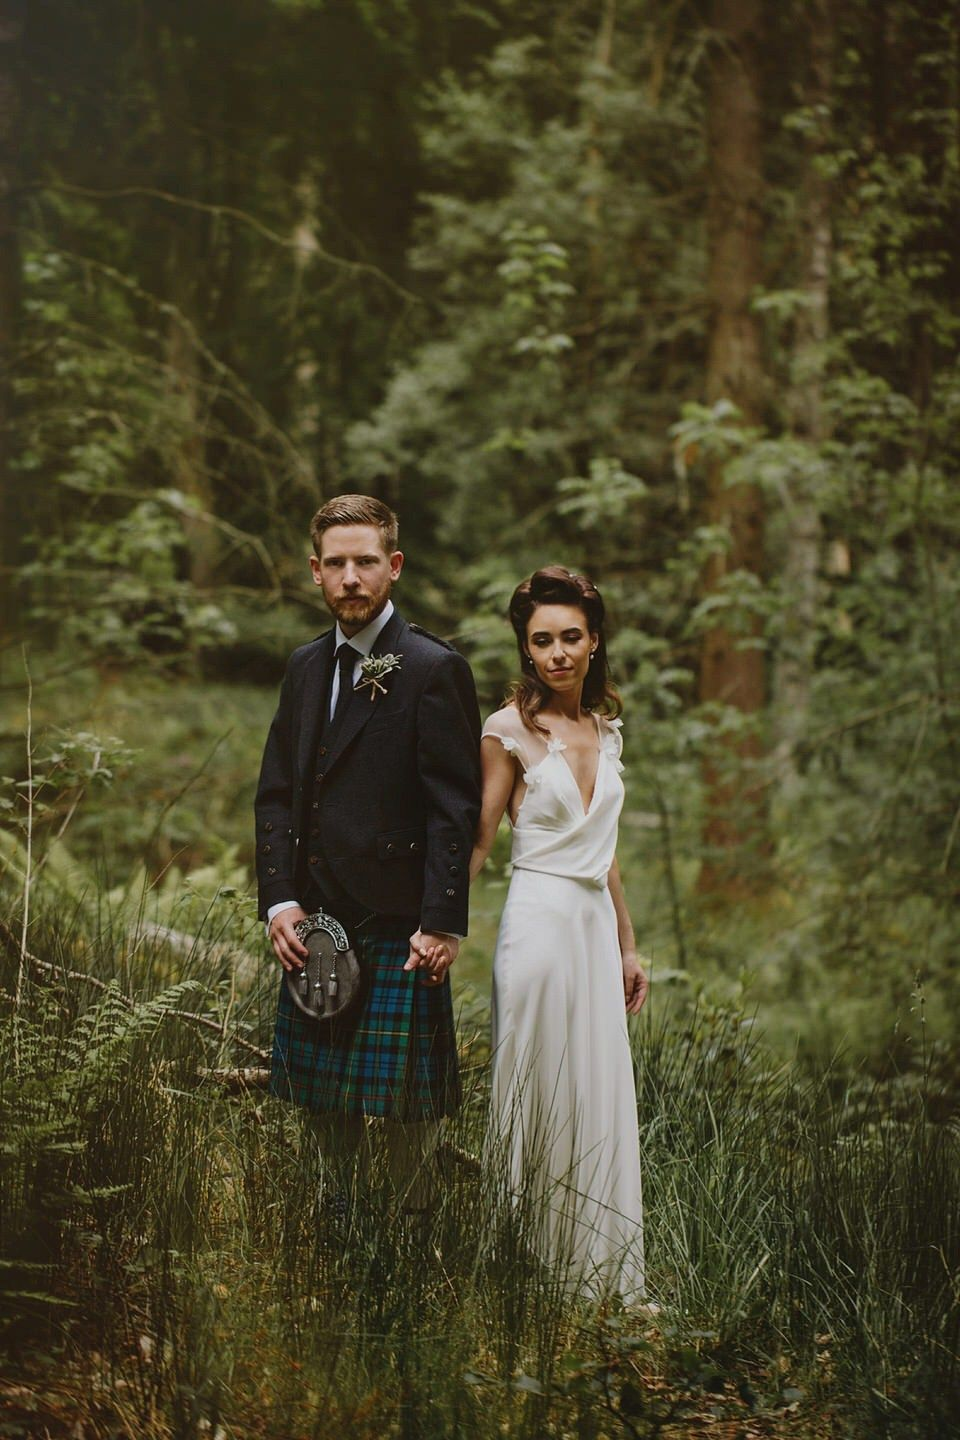 Scottish tartan wedding dress  A David Fielden Gown For A Relaxed and Nature Inspired Scottish